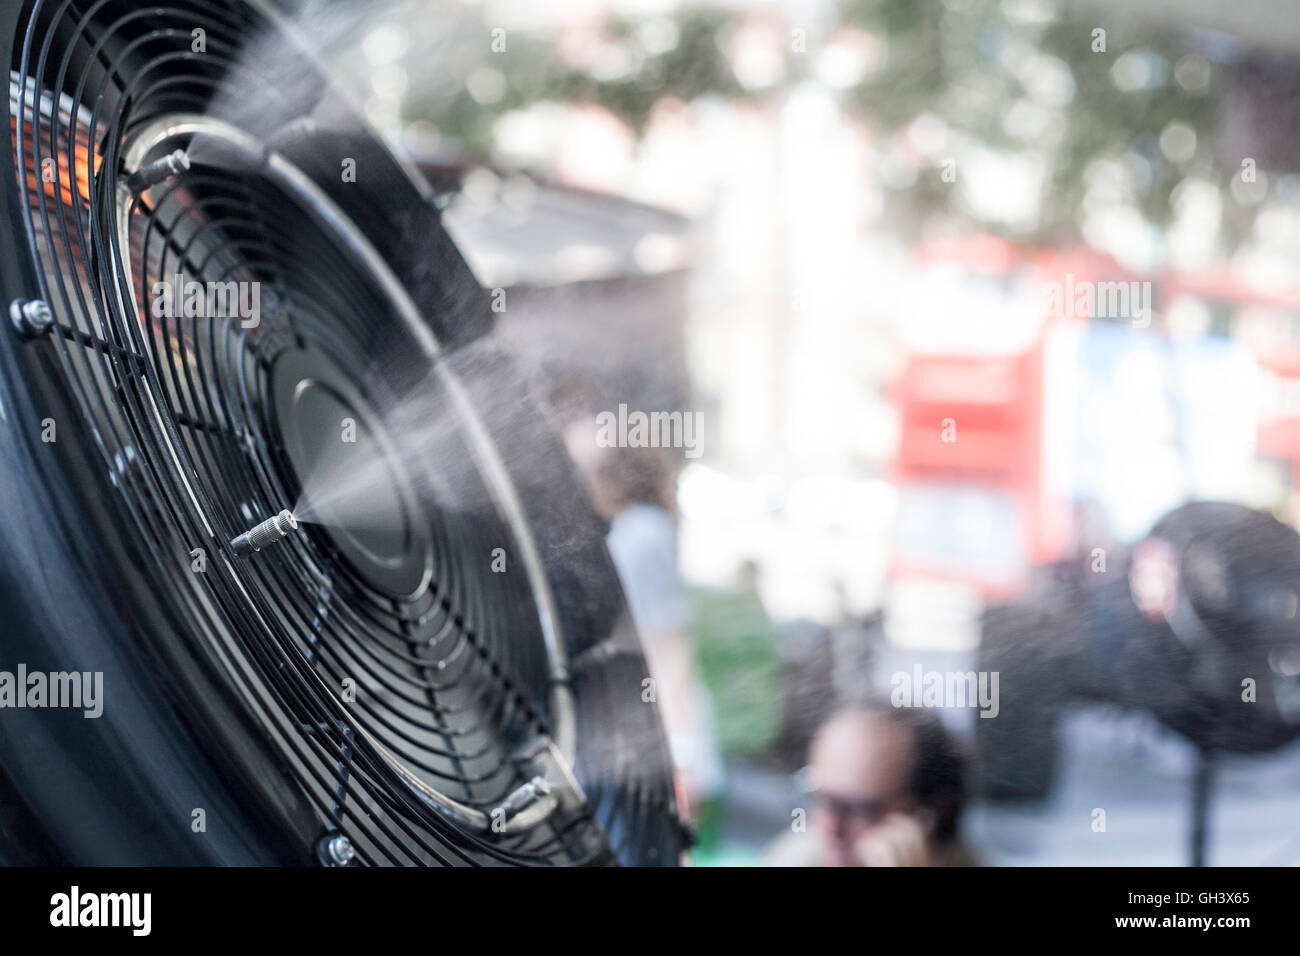 Fan sprinklers splashing vaporized water at terrace bar in order to cool the hot summer temperature in Spain - Stock Image